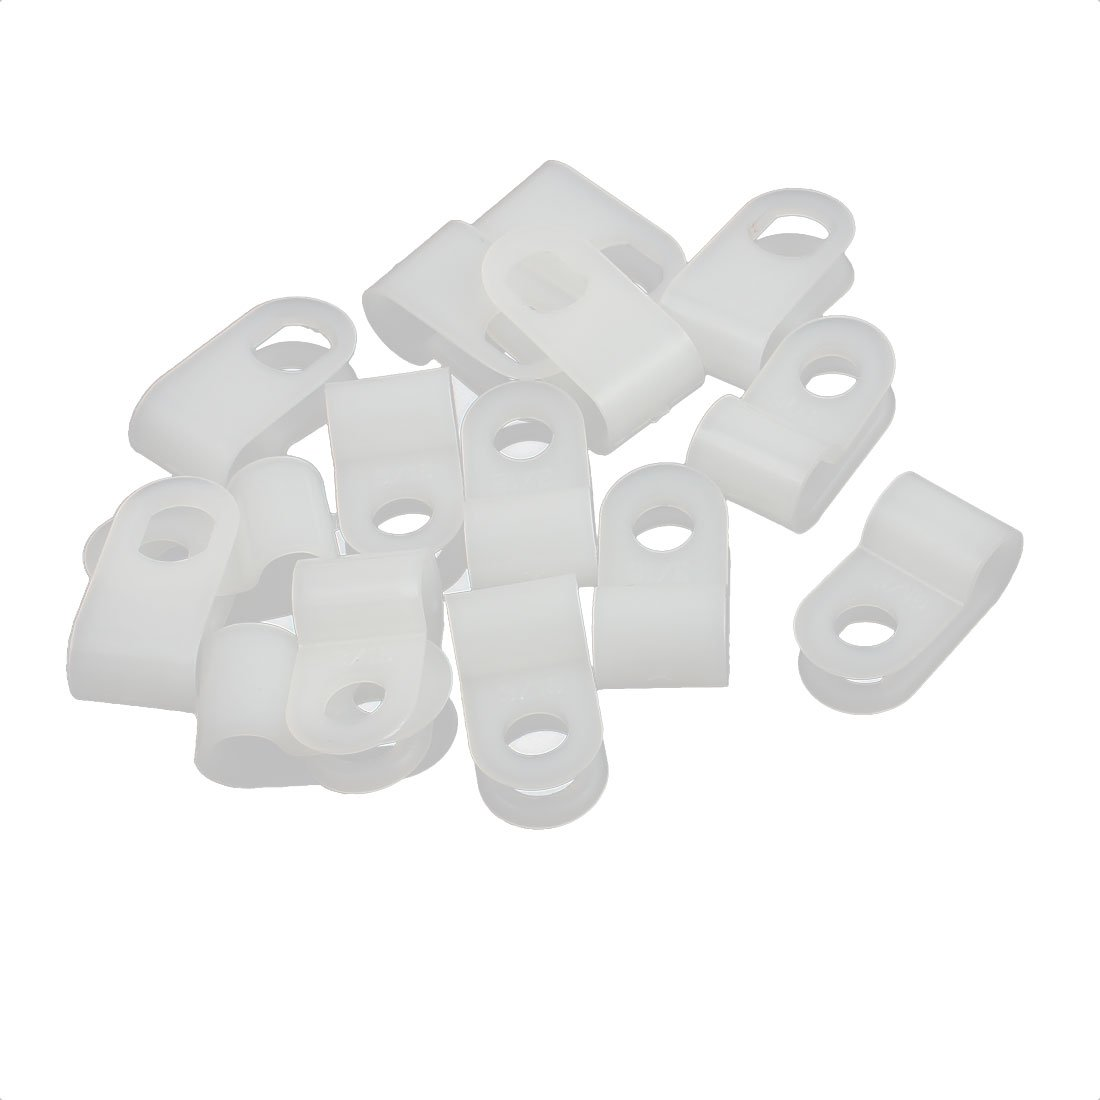 Aexit 15Pcs Off-White Nylon R-Type Cable Clamp 3/16 for Wire Hose Tube